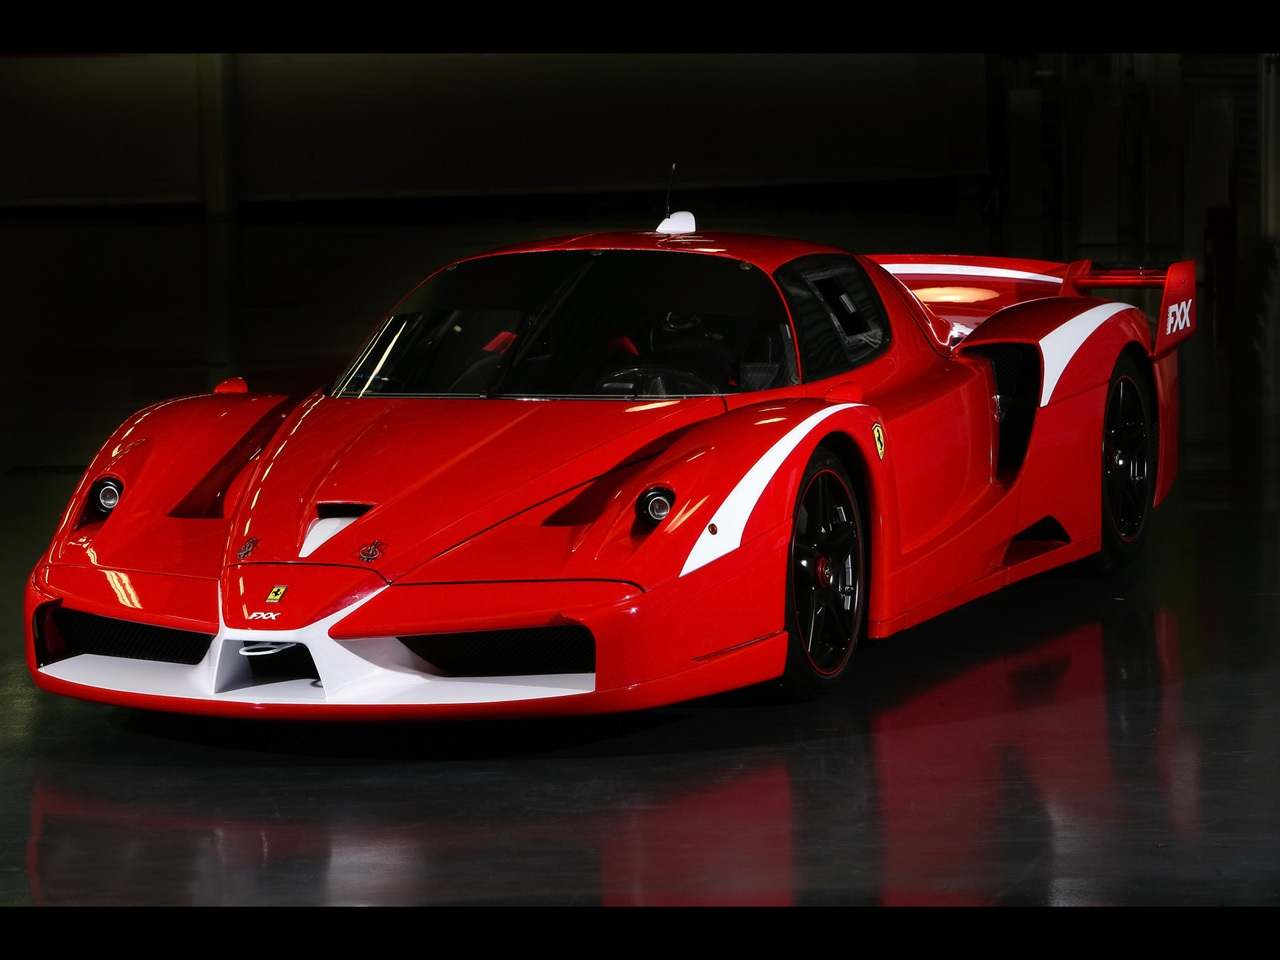 3d Love Wallpaper Download Red Ferrari Enzo Wallpaper Area Wallpaper Area Hd